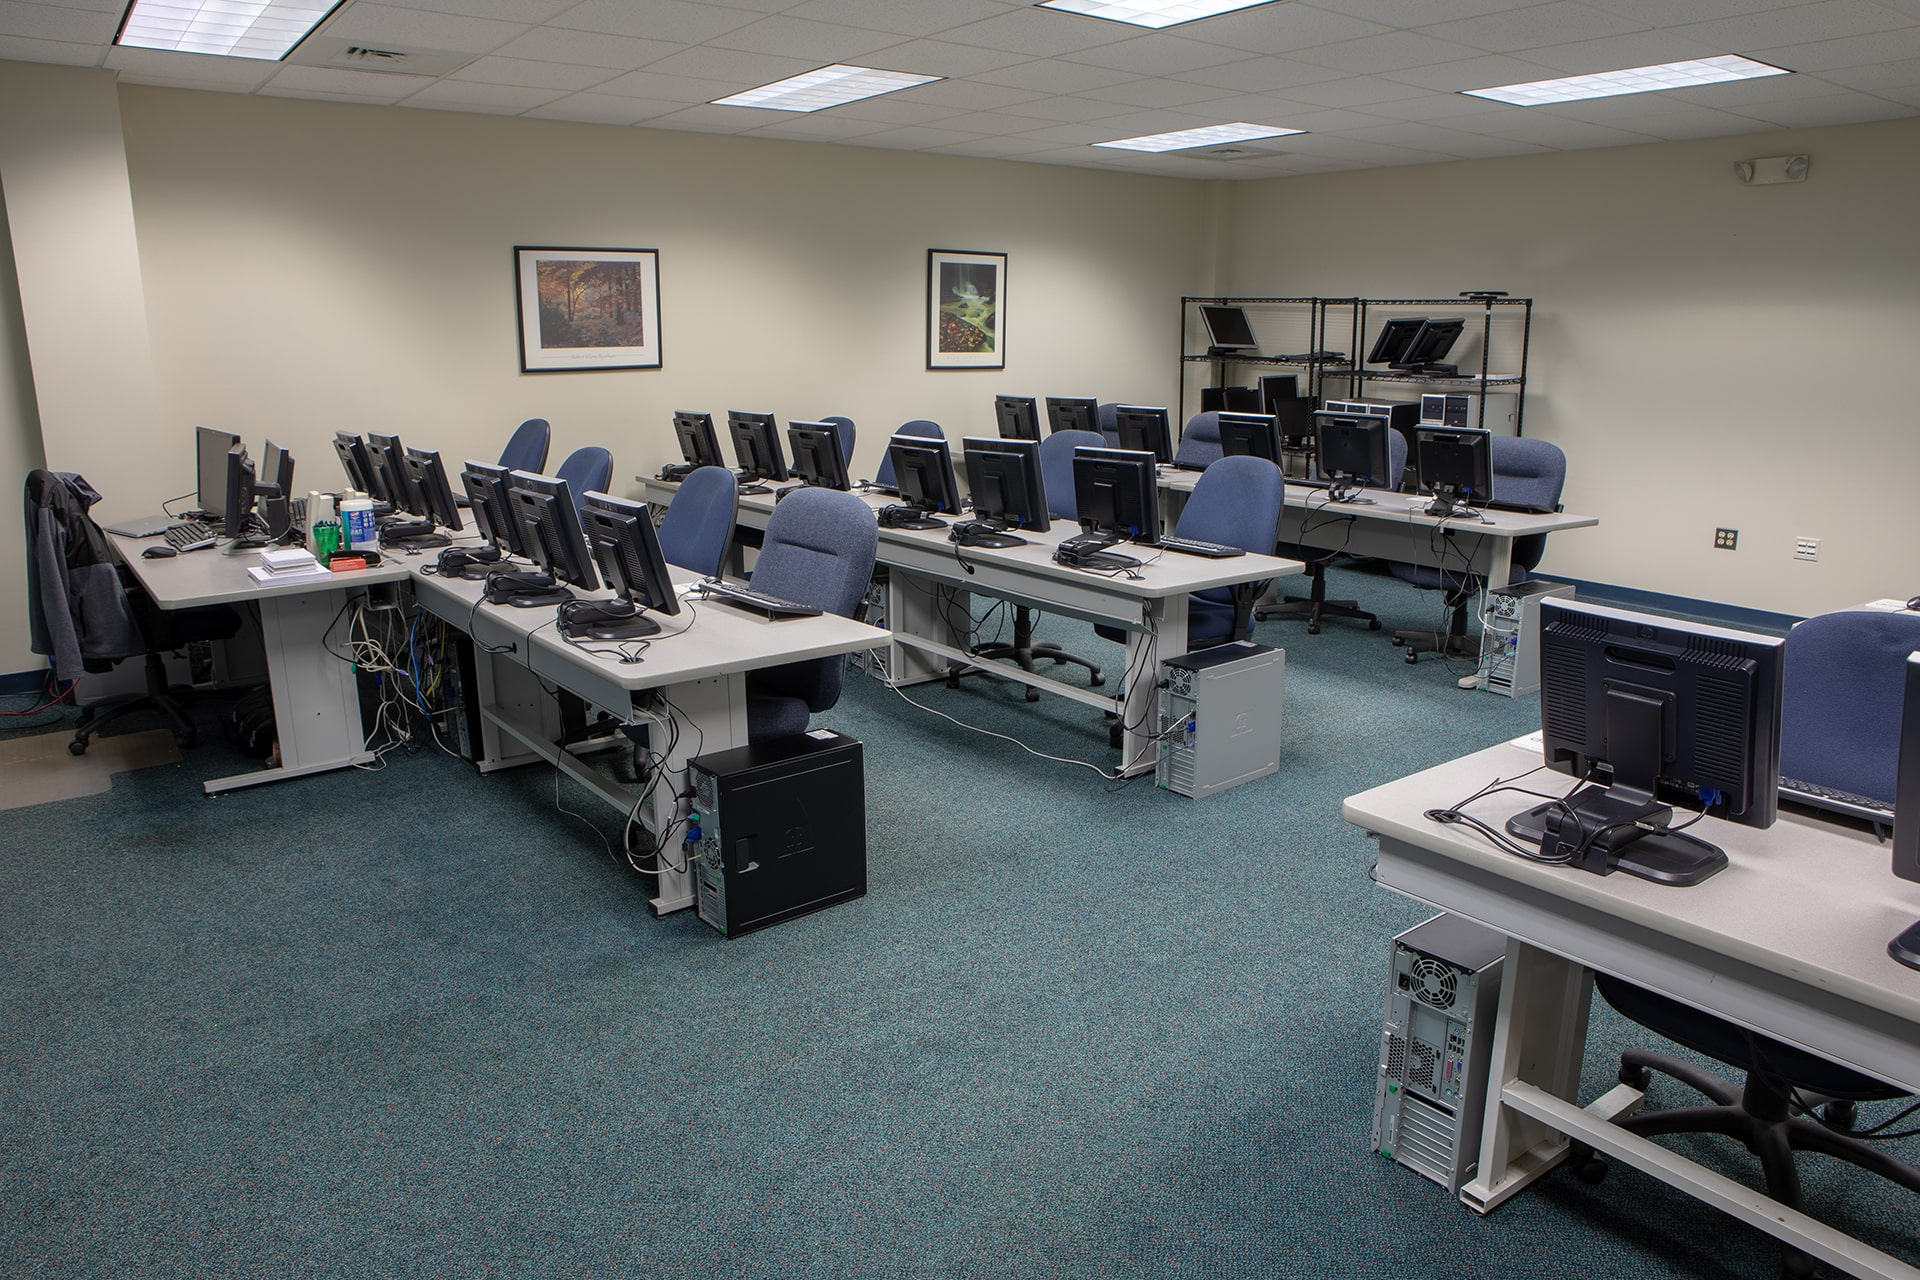 Classroom and Conference Room Rentals at CTComp in Rocky Hill and Plantsville, CT